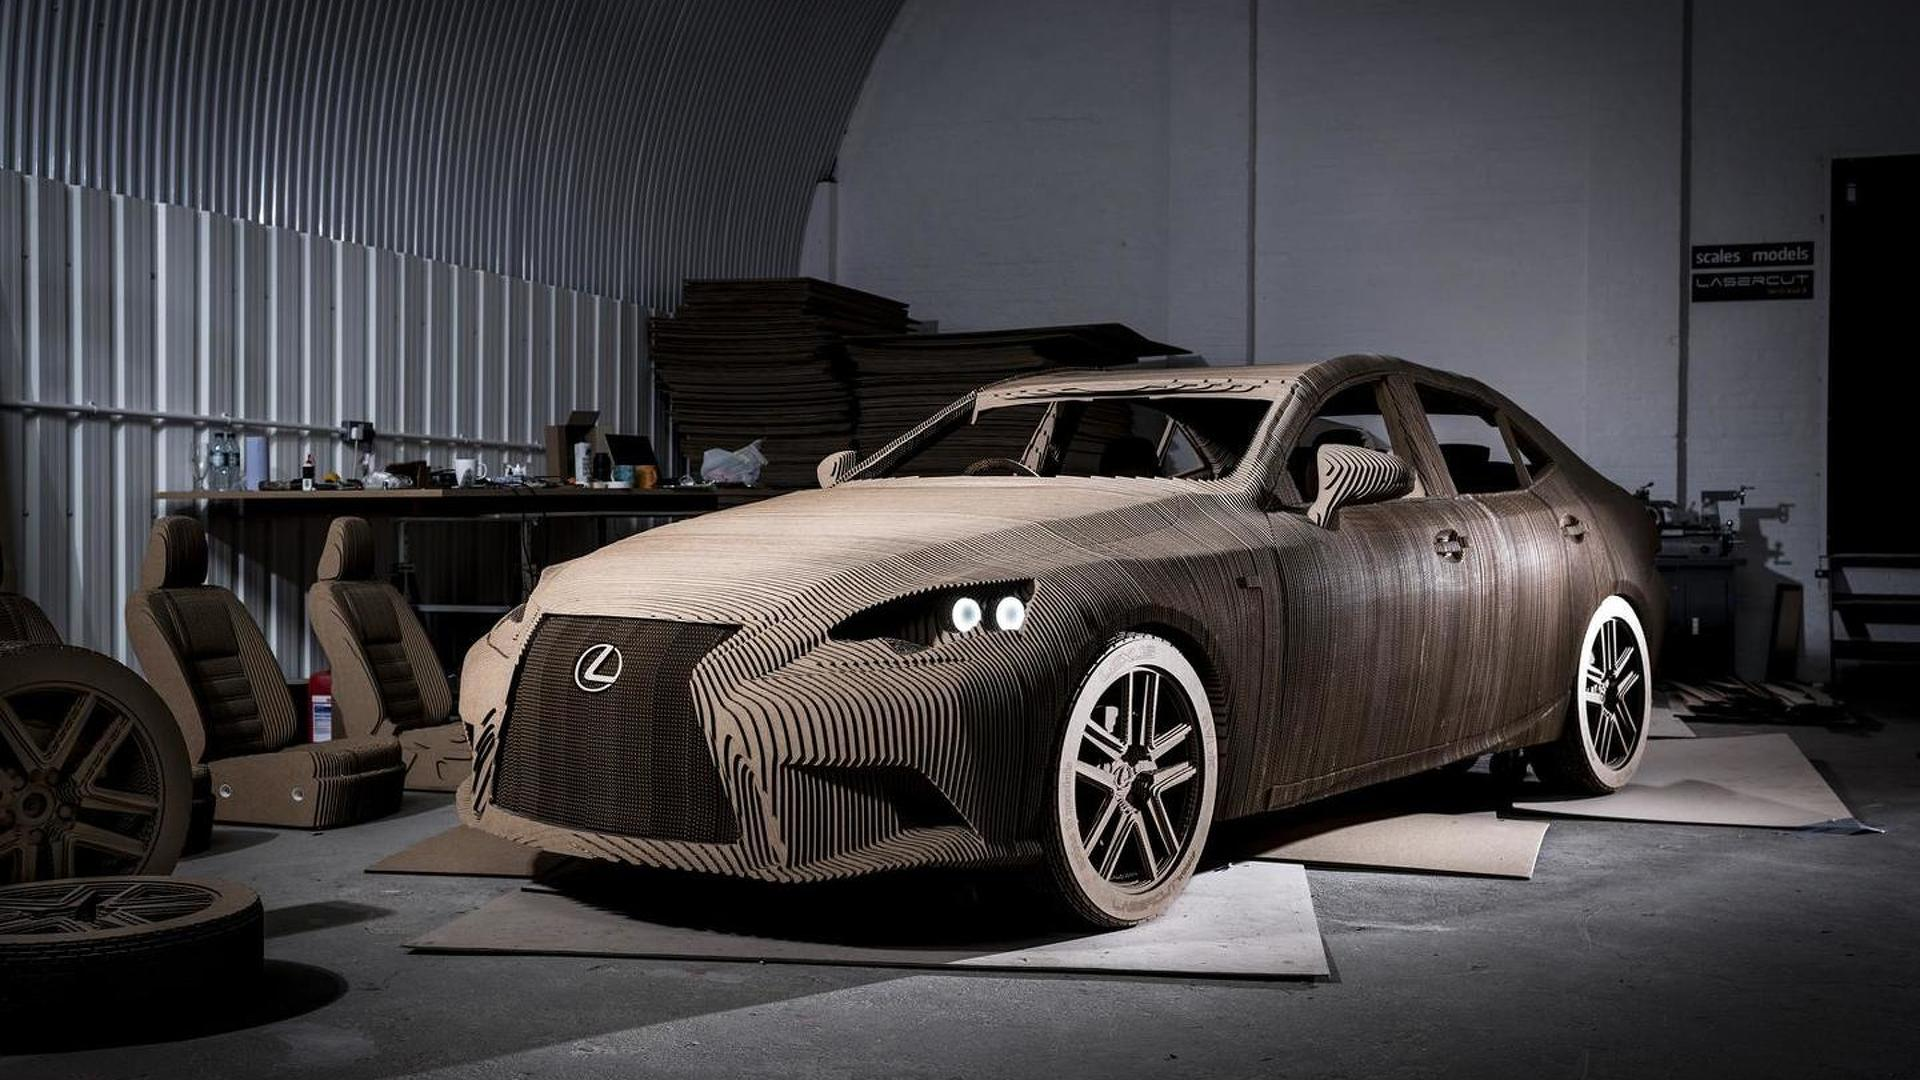 Lexus prepares drivable IS full-size origami replica with electric motor [videos]